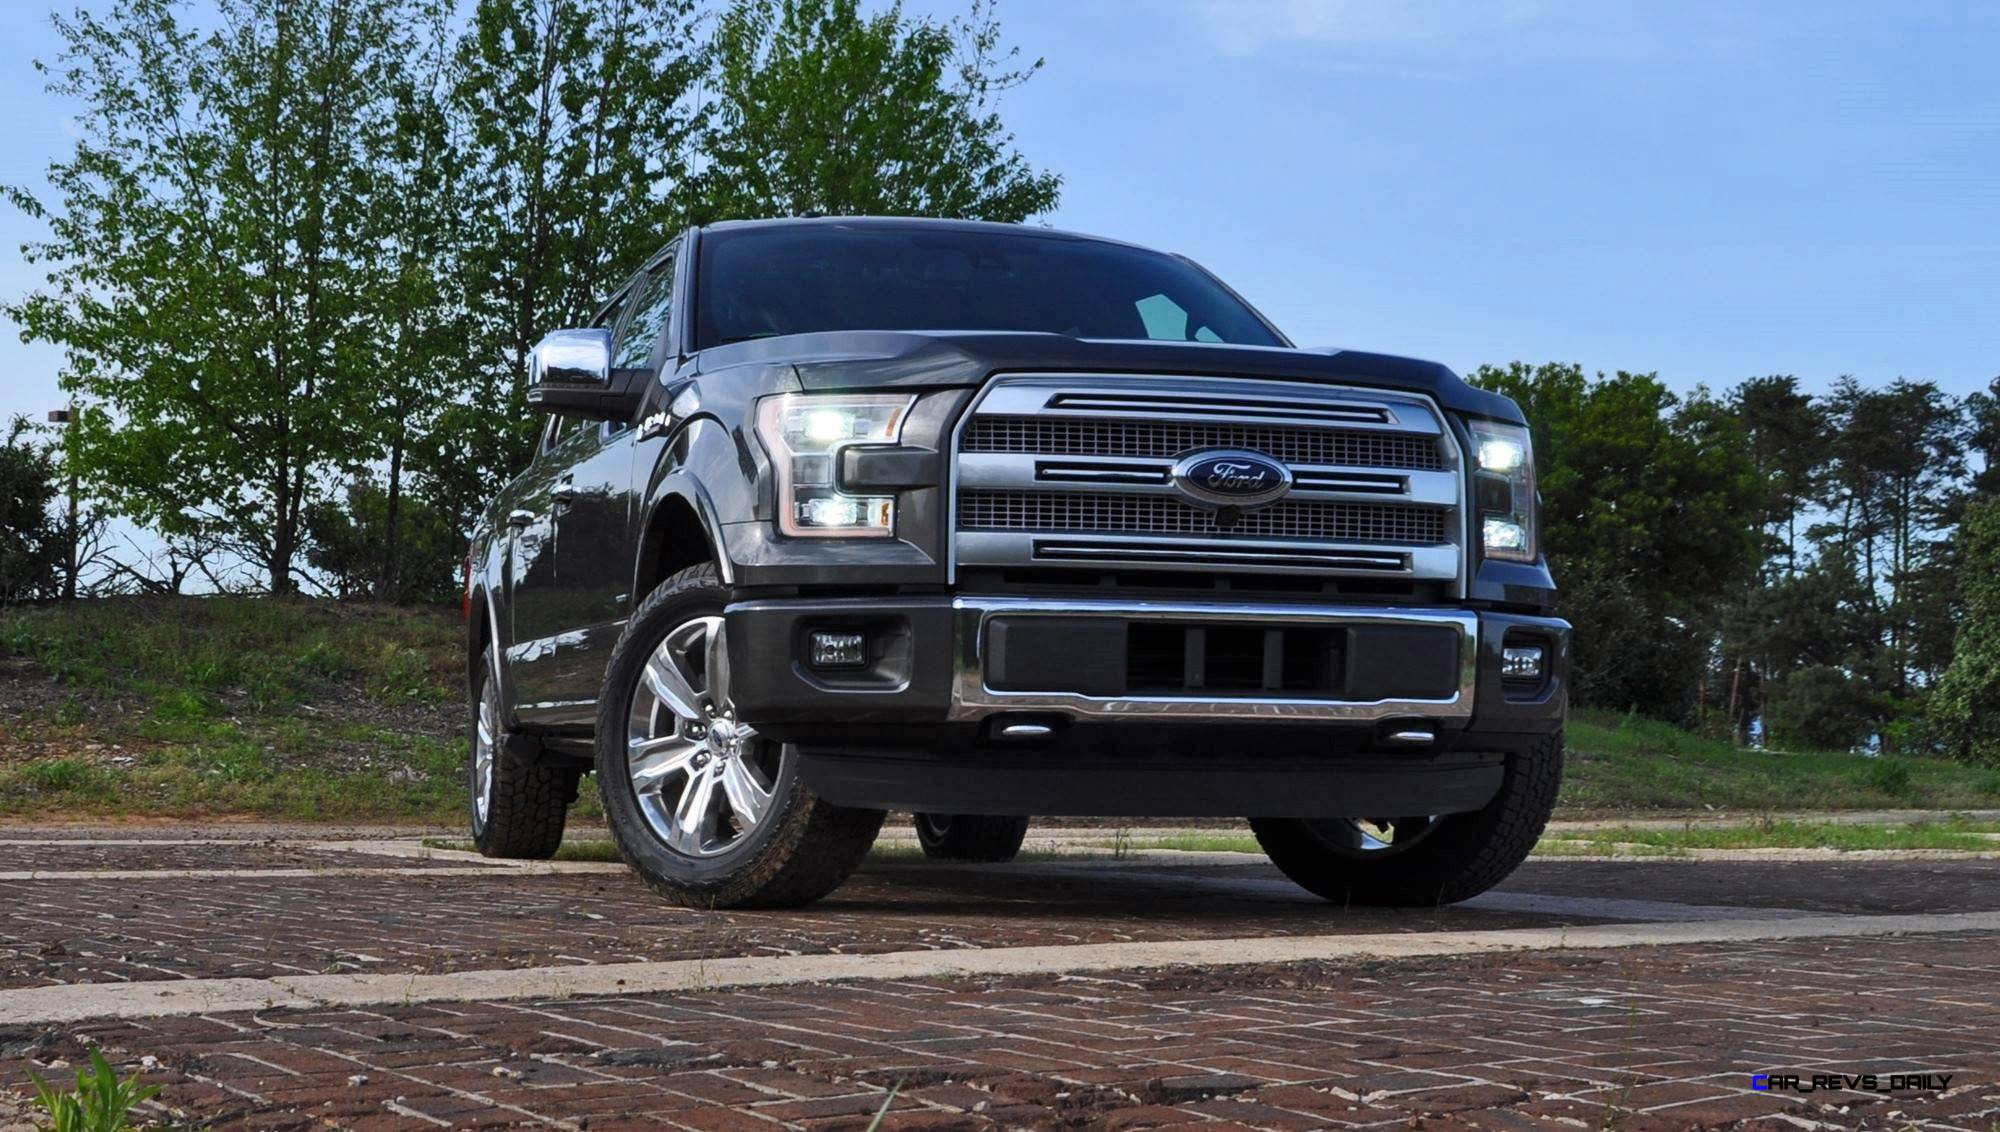 2015 ford f 150 platinum 4x4 supercrew review 19. Black Bedroom Furniture Sets. Home Design Ideas